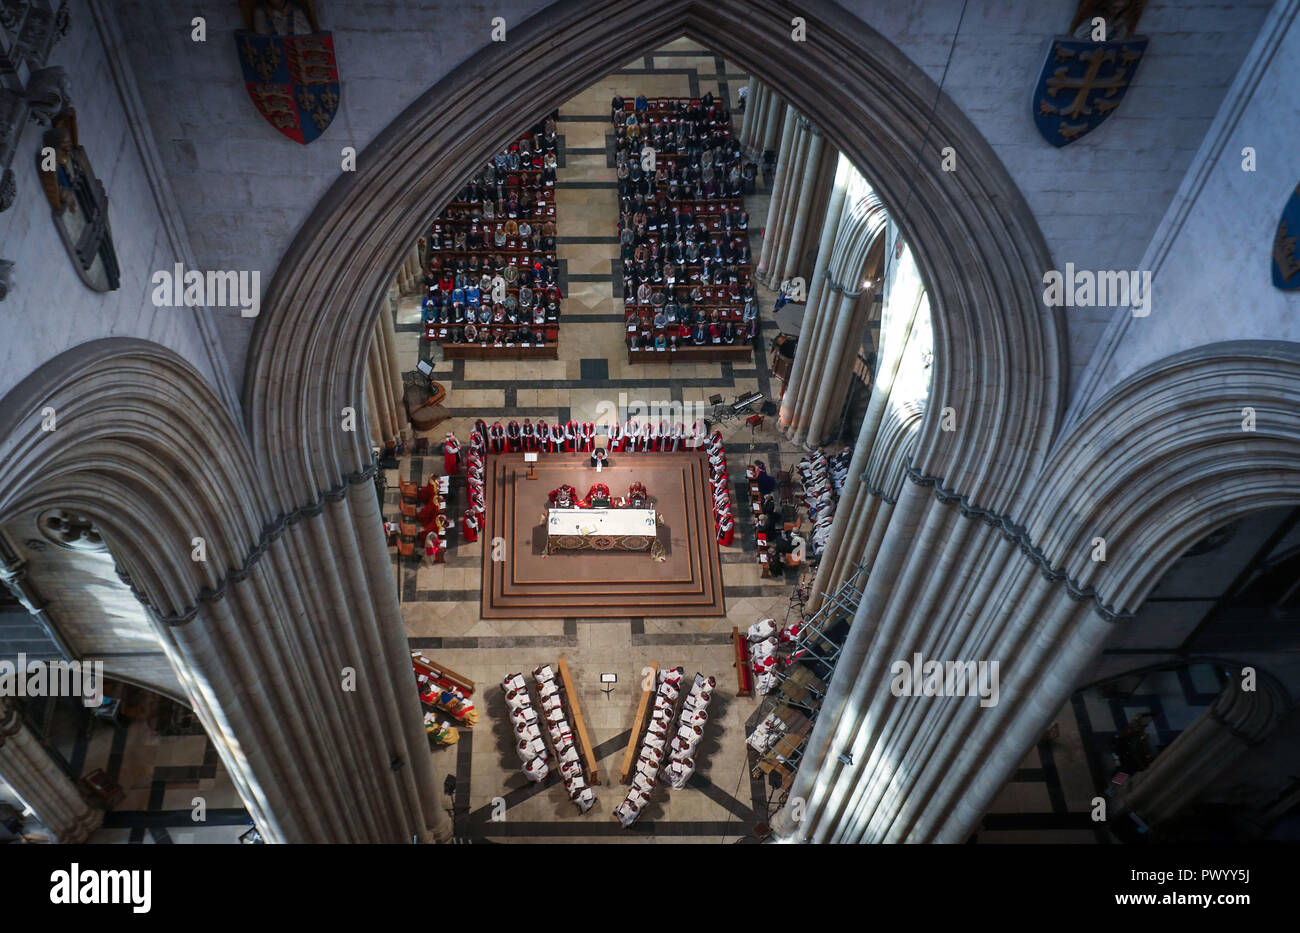 The Diocese of Liverpool at York Minster, where the Venerable Beverley Anne Mason is consecrated as the next Suffragan Bishop of Warrington. - Stock Image